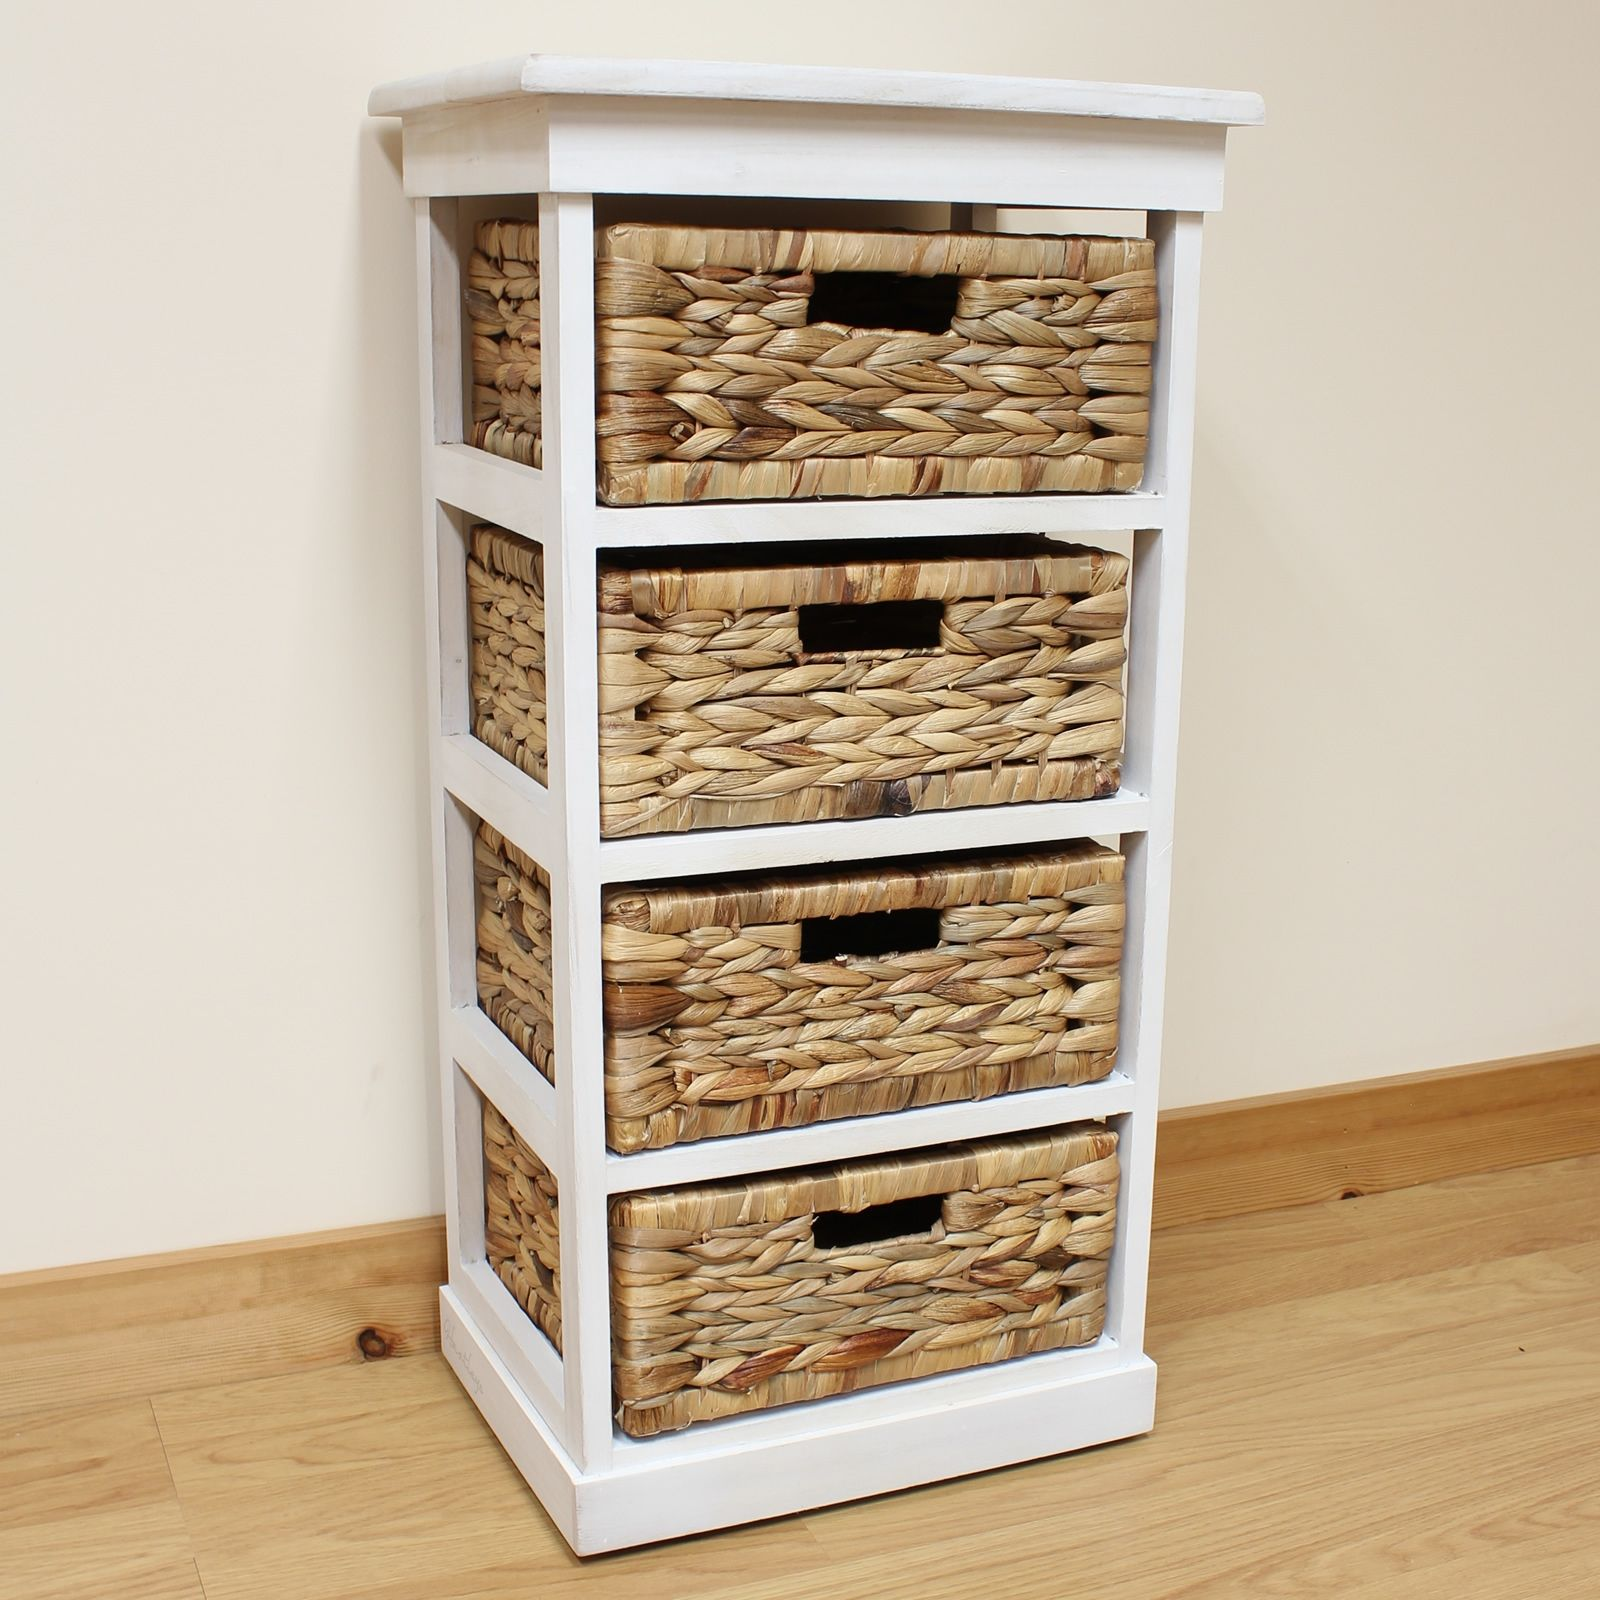 4 Drawer Low Wicker Storage Unit With Wooden Frame